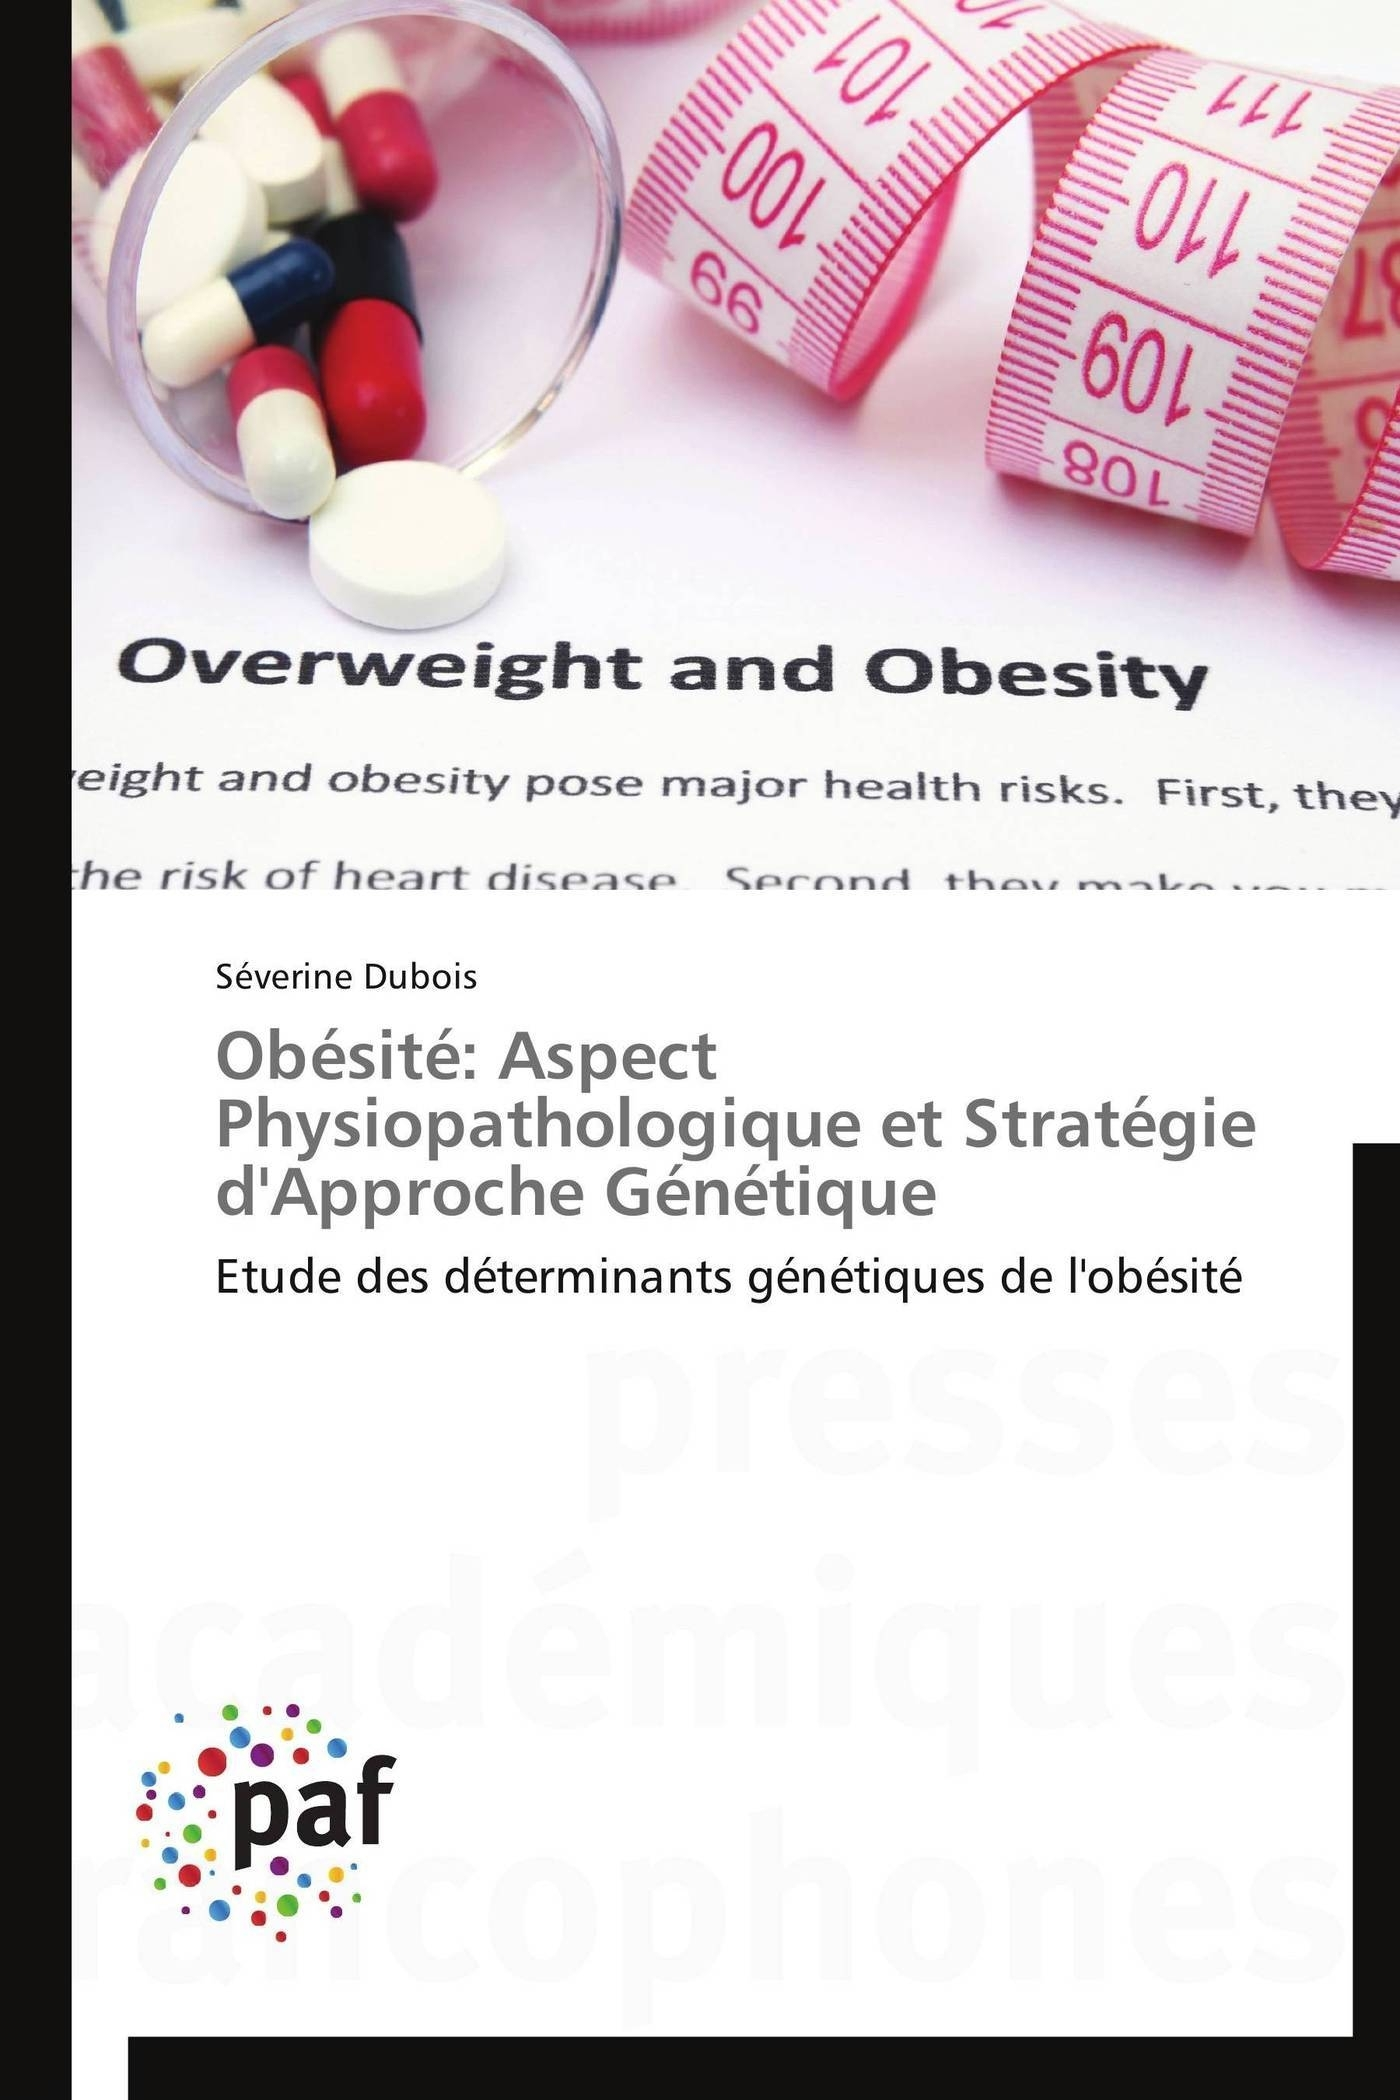 OBESITE: ASPECT PHYSIOPATHOLOGIQUE ET STRATEGIE D'APPROCHE GENETIQUE